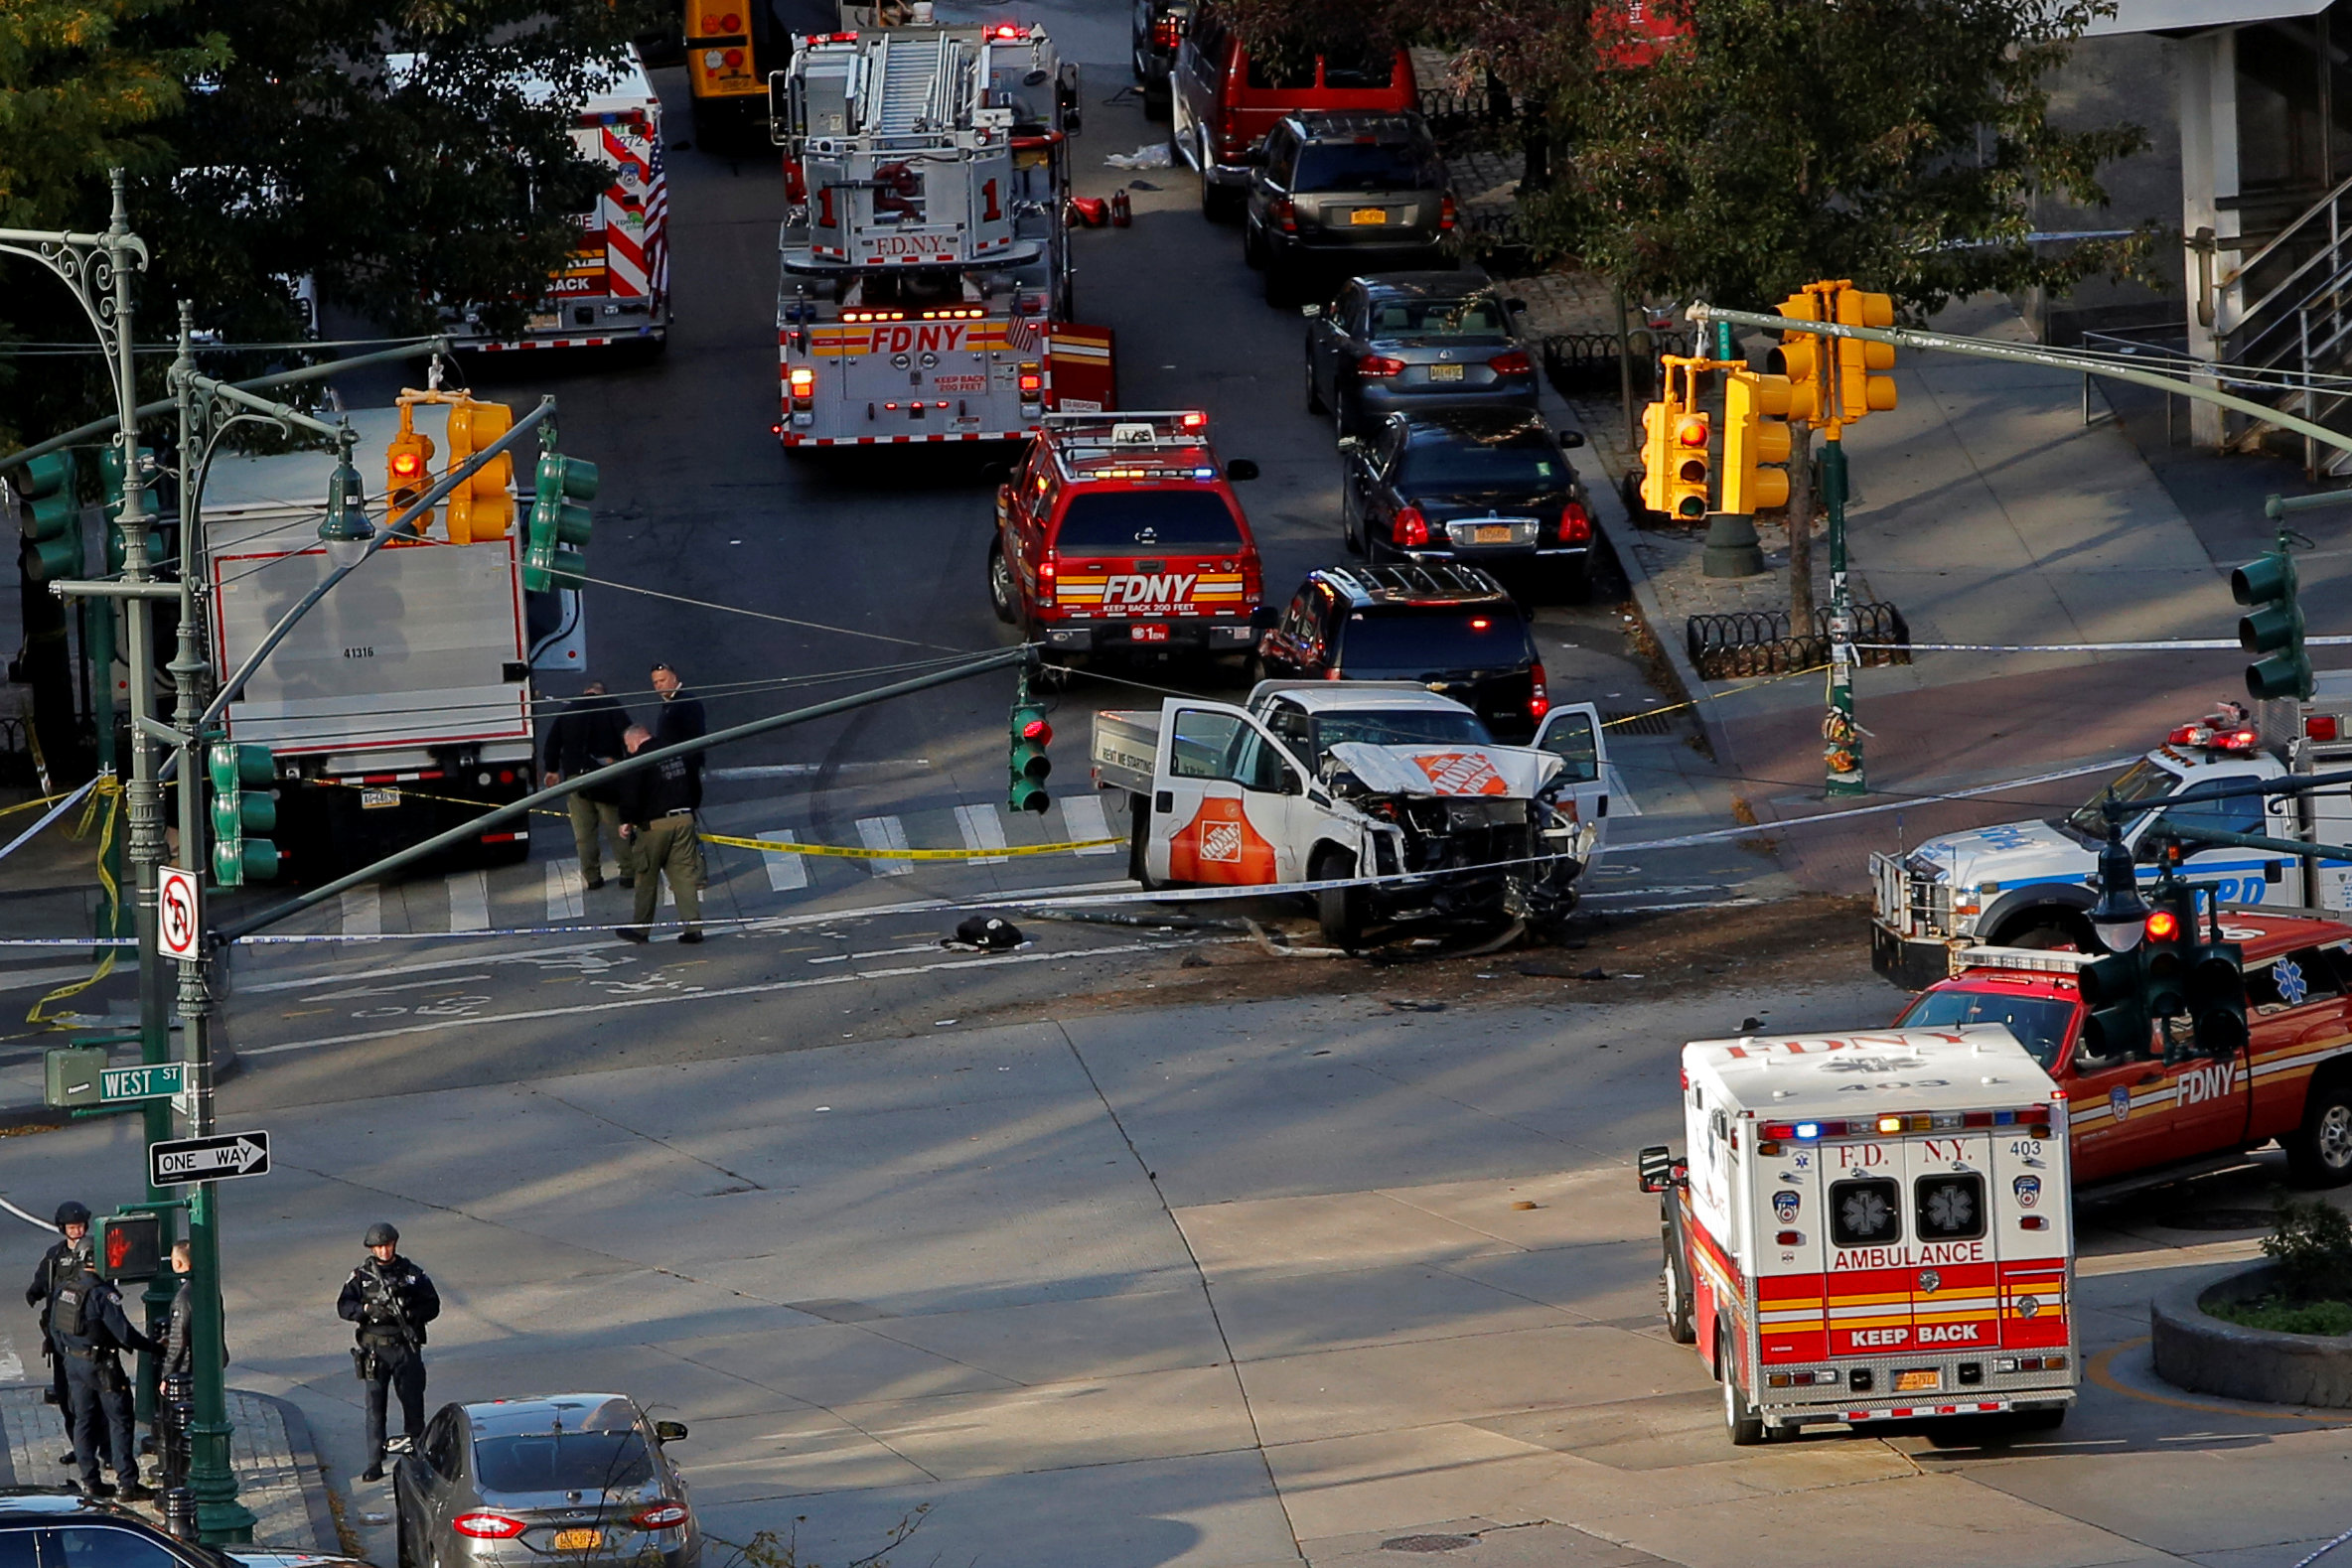 Several people killed by vehicle on New York City bike path